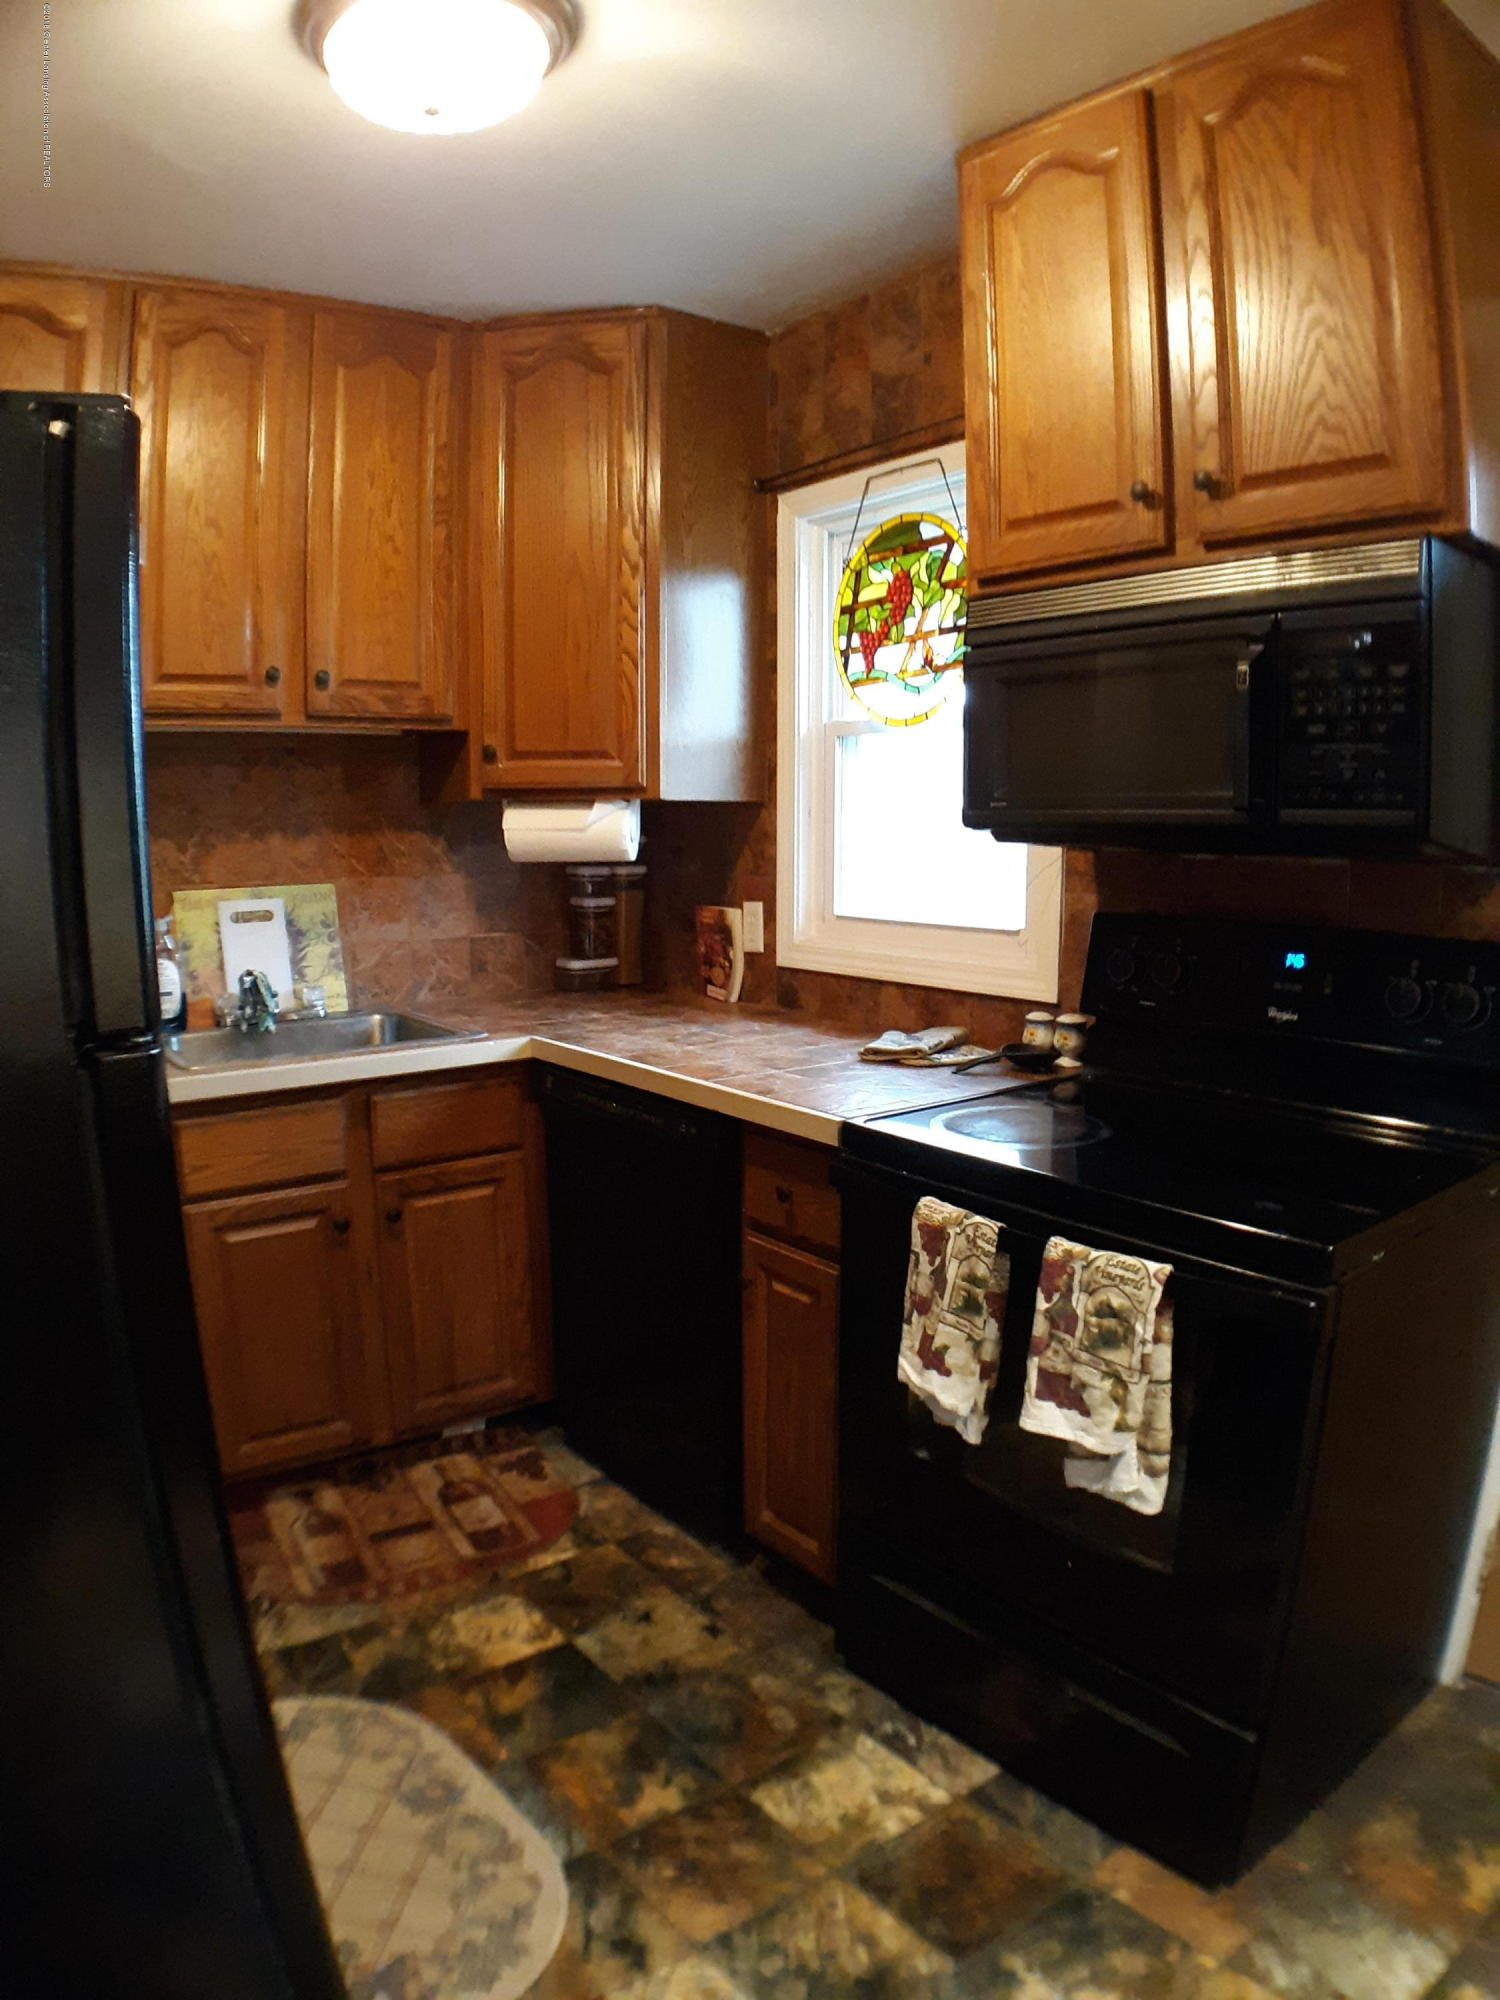 1718 Victor Ave - 1718 kitchen - 5